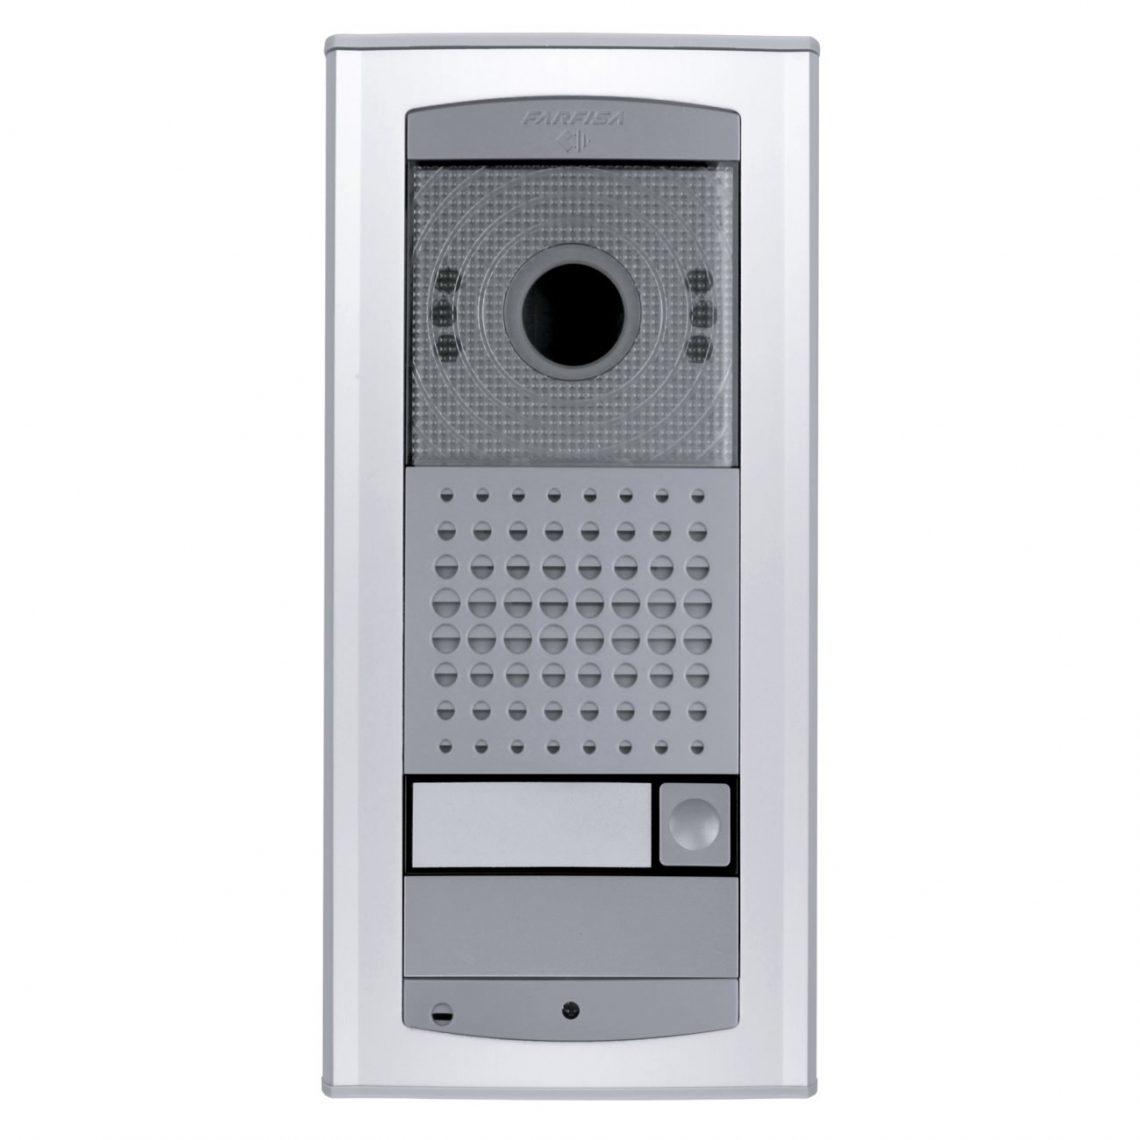 Posto esterno audio-video colore - AGL100V